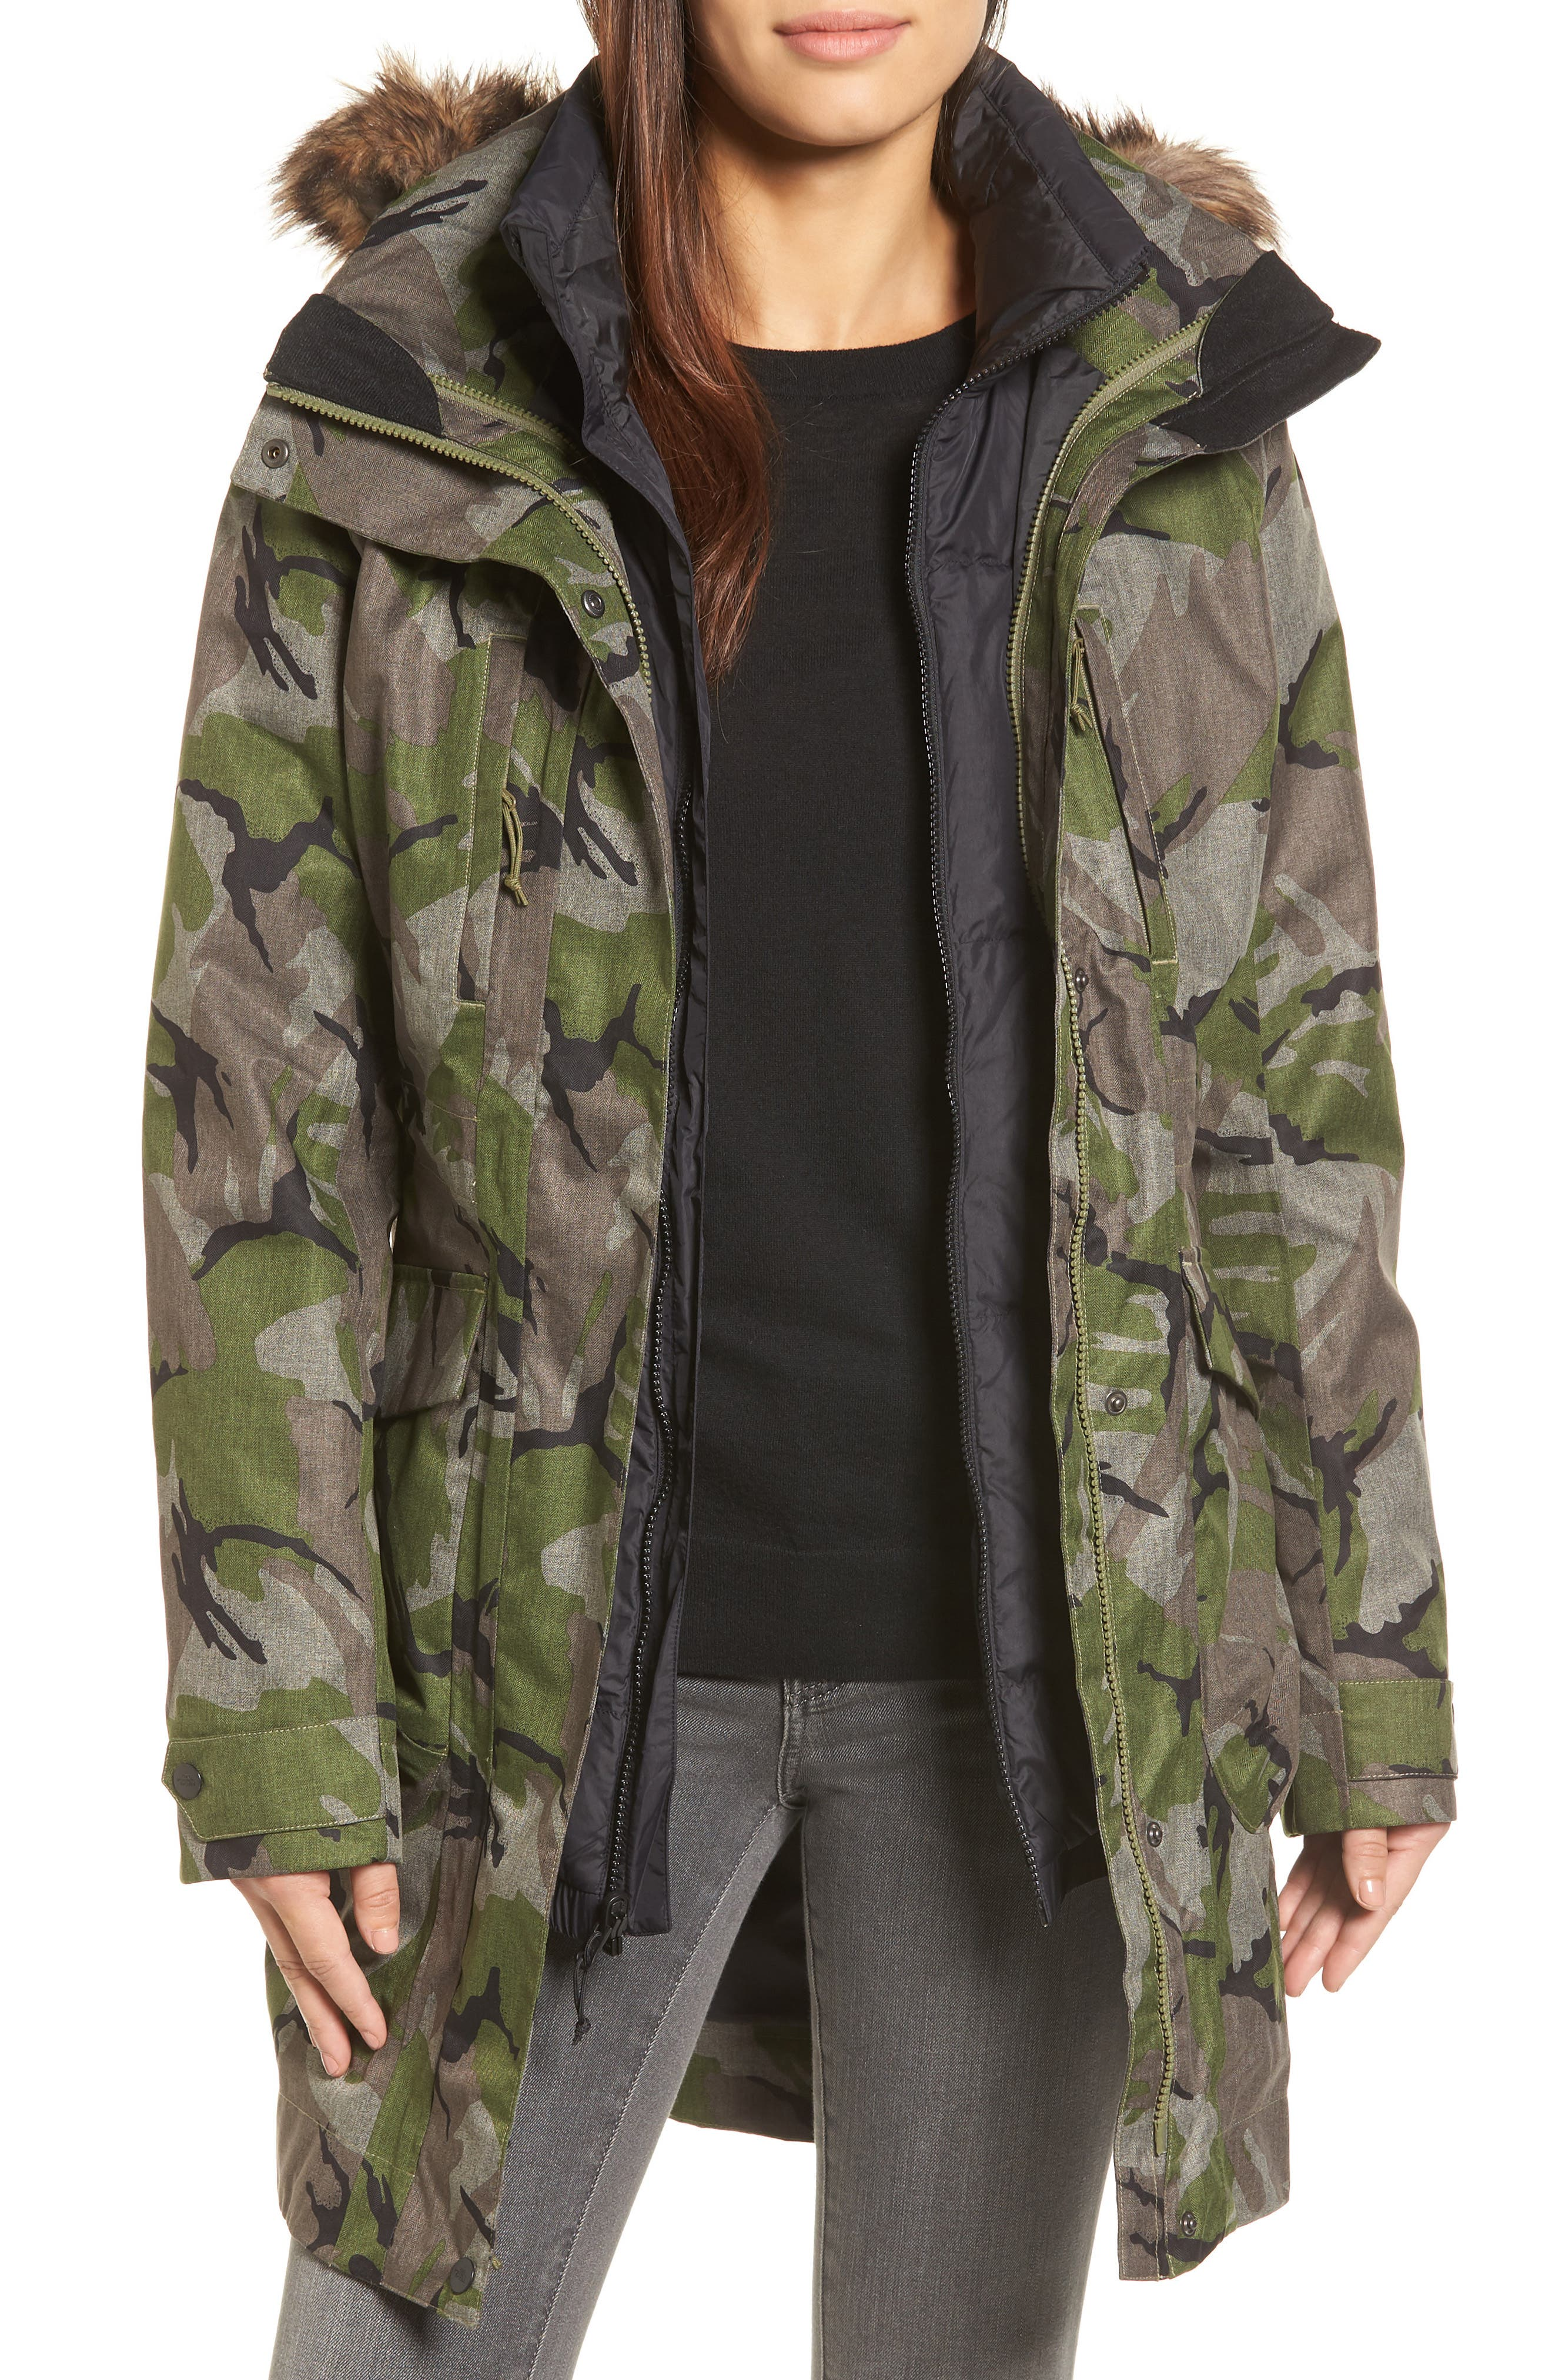 The North Face Outer Boroughs 3-in-1 TriClimate® Waterproof Jacket with Faux Fur Trim